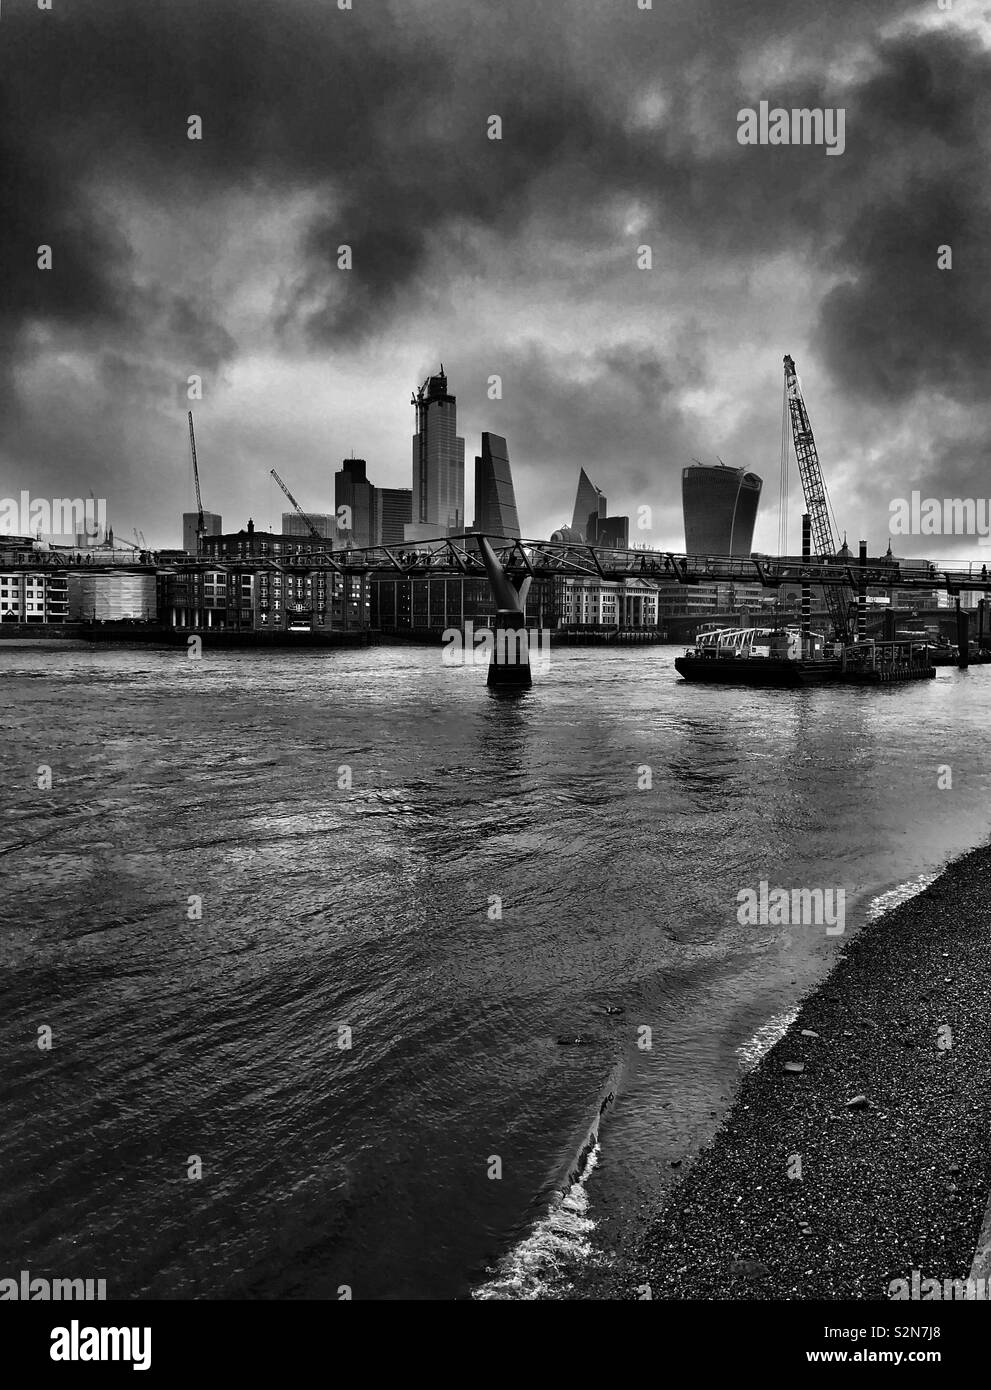 London skyline and dramatic clouds above the river Thames - Stock Image